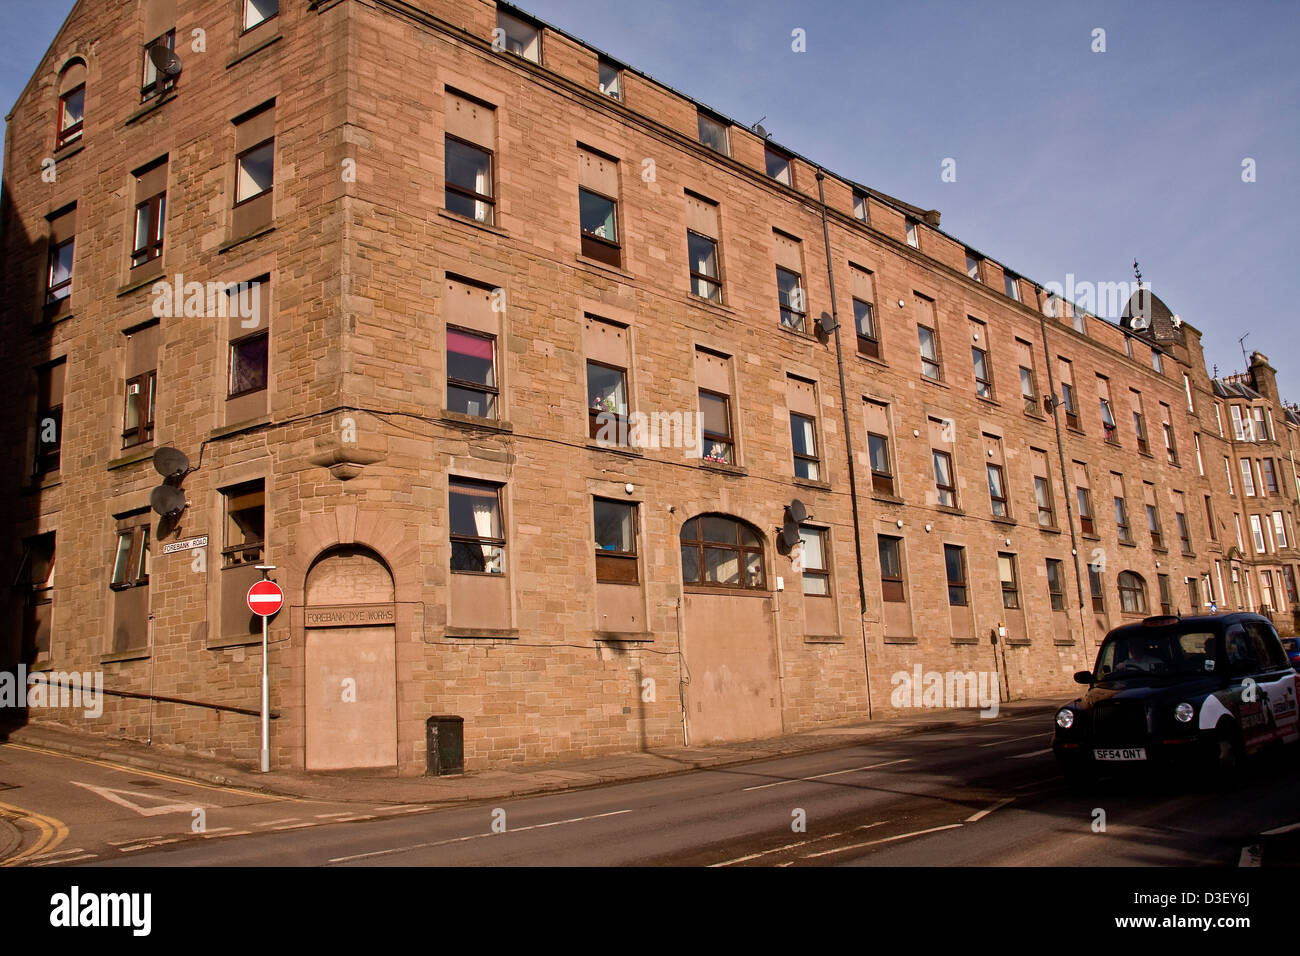 Dyeworks owned originally by J & F Stevenson who sold it to their manager William Watson in 1895 following a - Stock Image